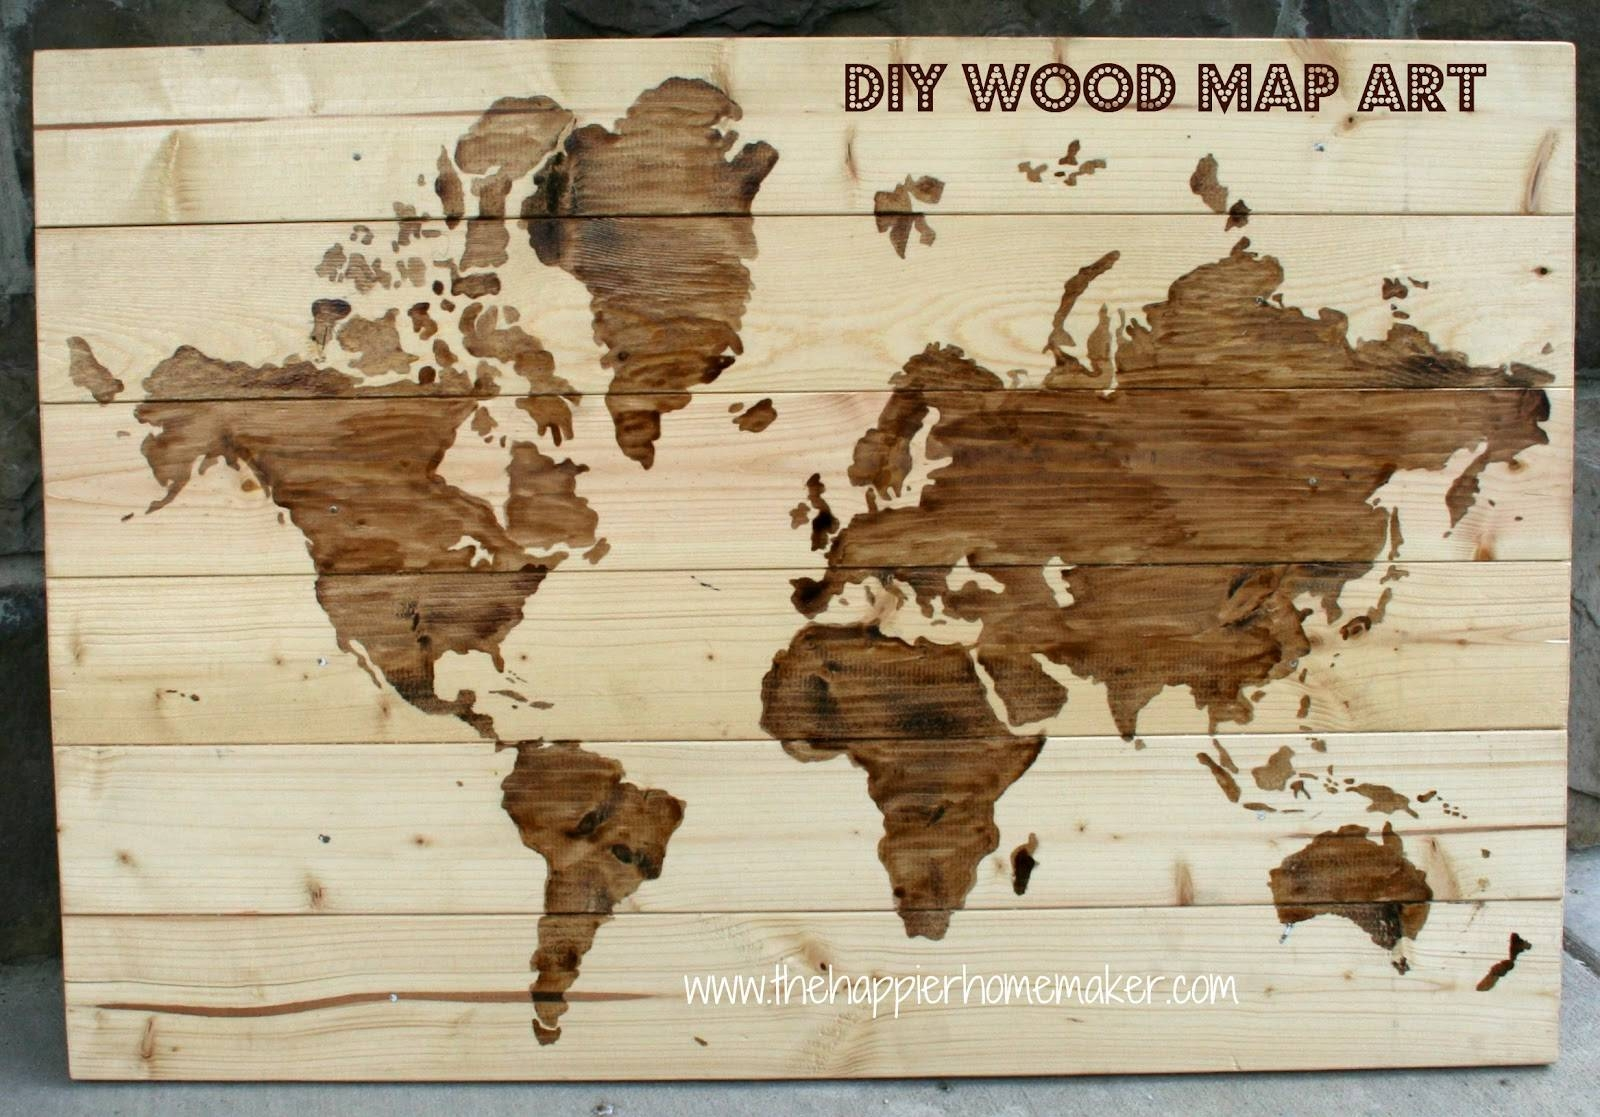 Diy Wooden World Map Art | The Happier Homemaker With Regard To 2017 Wood Map Wall Art (View 5 of 20)